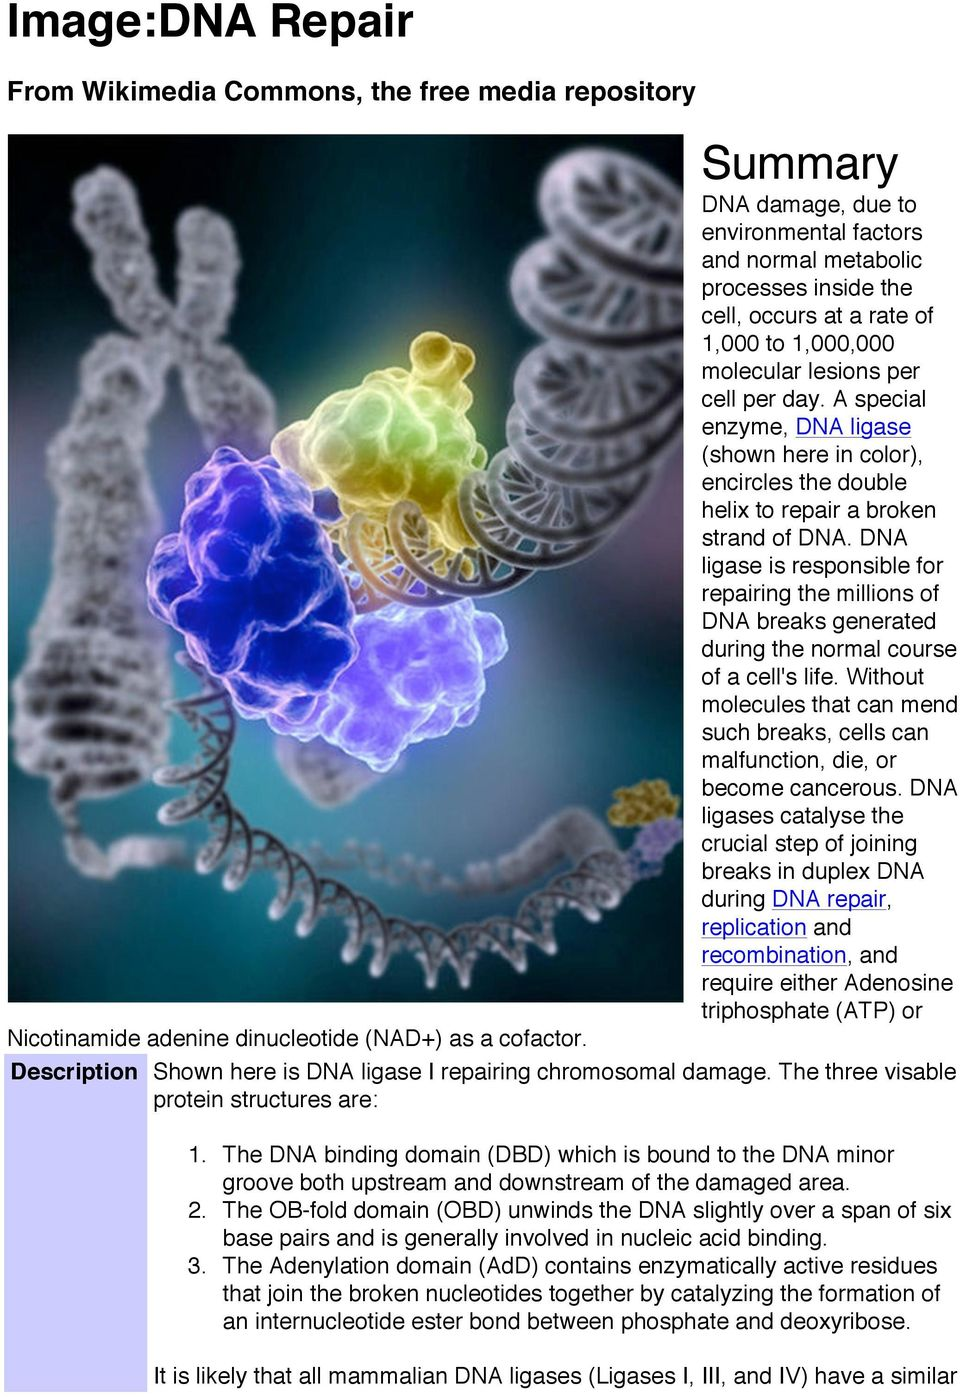 DNA ligase is responsible for repairing the millions of DNA breaks generated during the normal course of a cell's life.